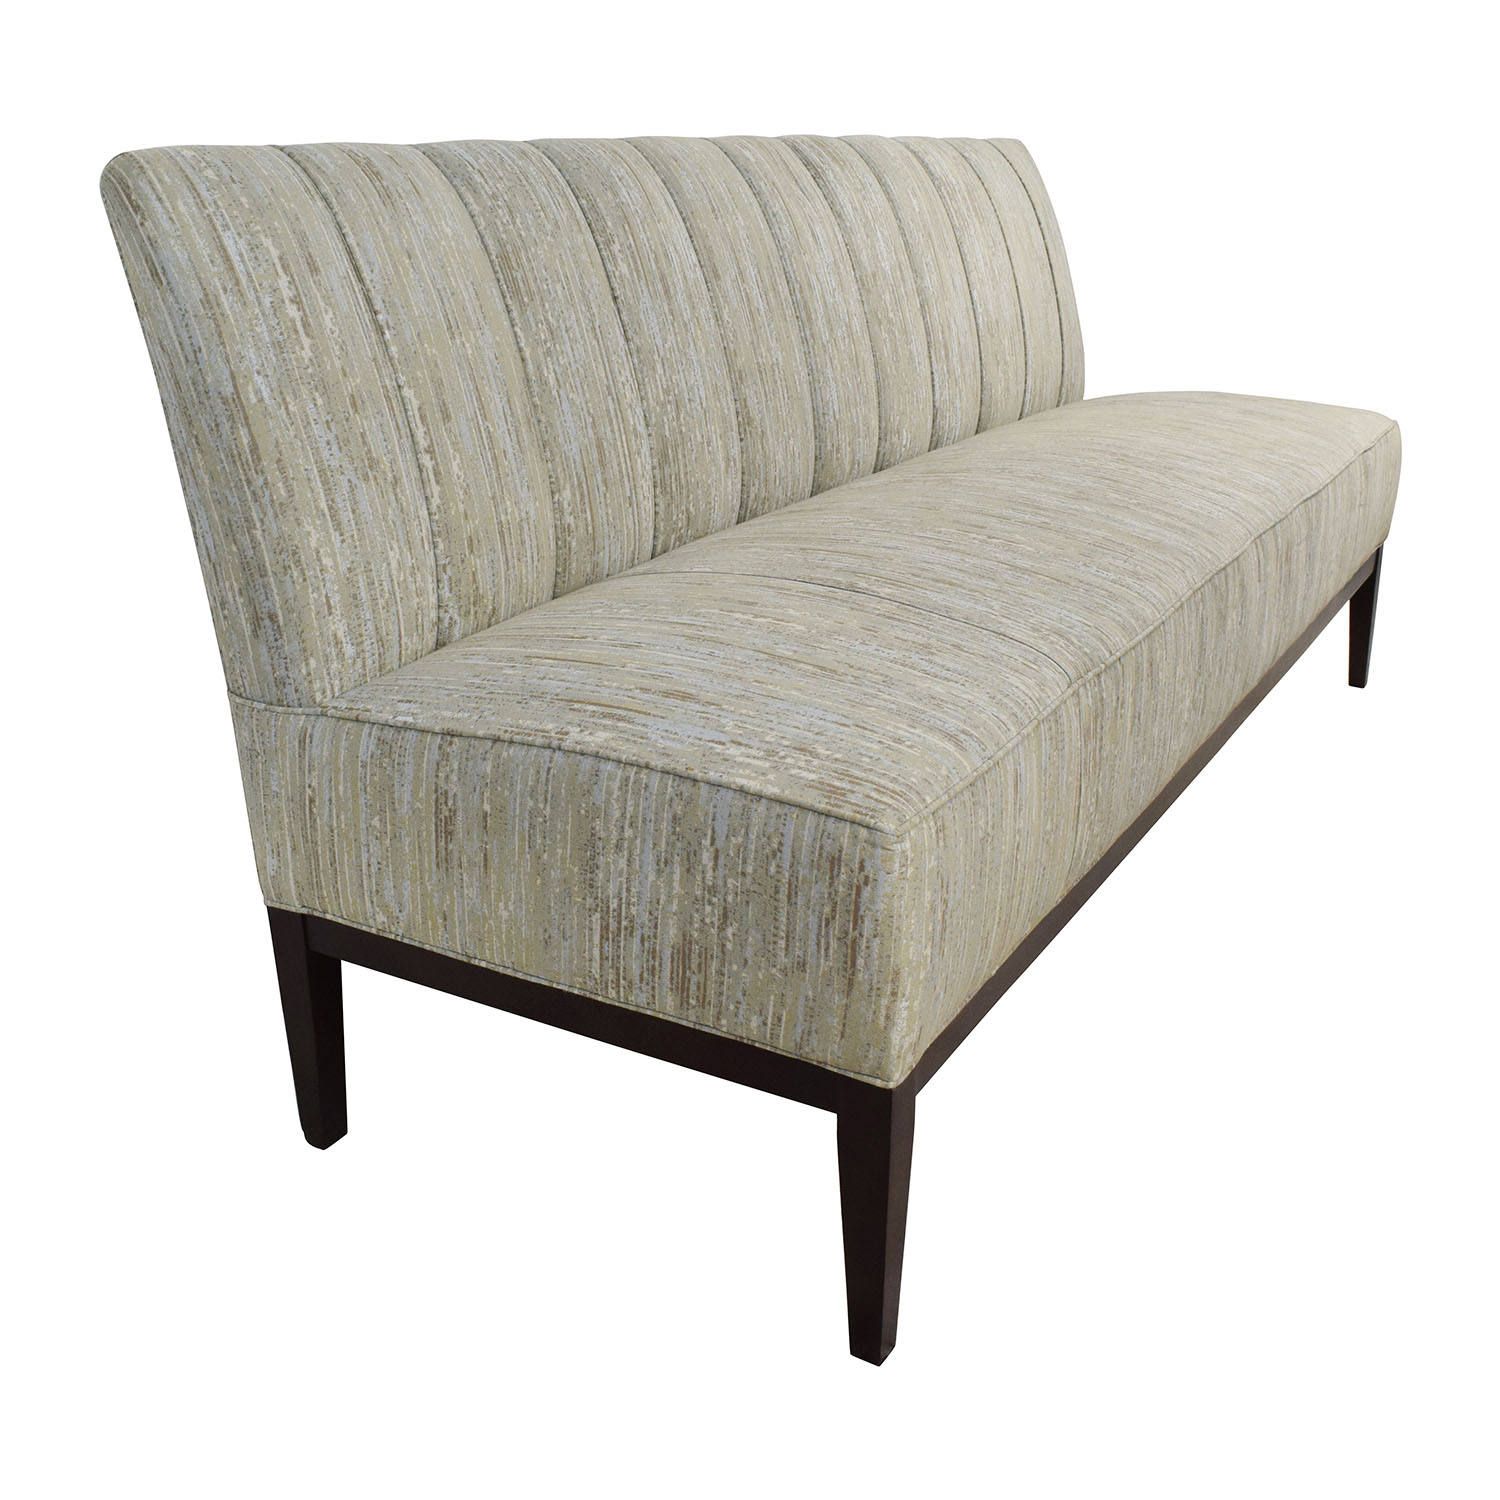 Banquet Dining Table: Sofa Banquet For Dining Table / Sofas